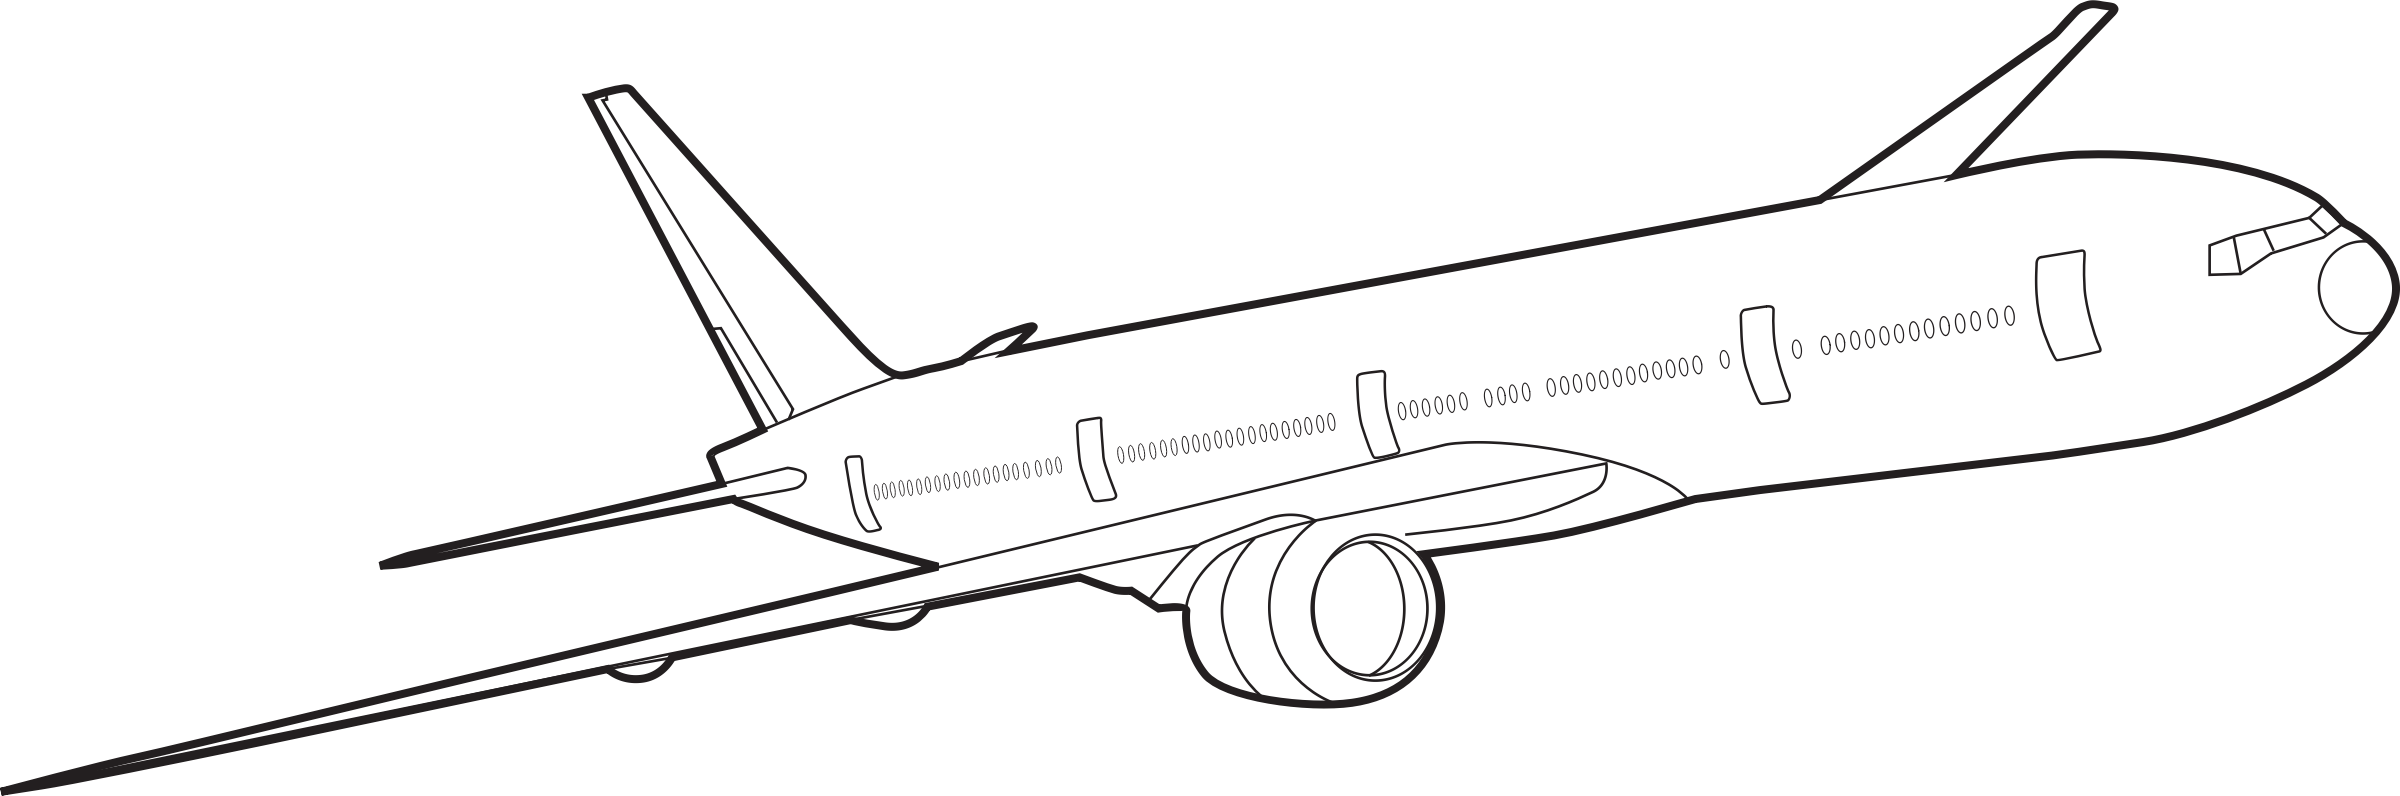 Plane Outline Drawing At Getdrawings Com Free For